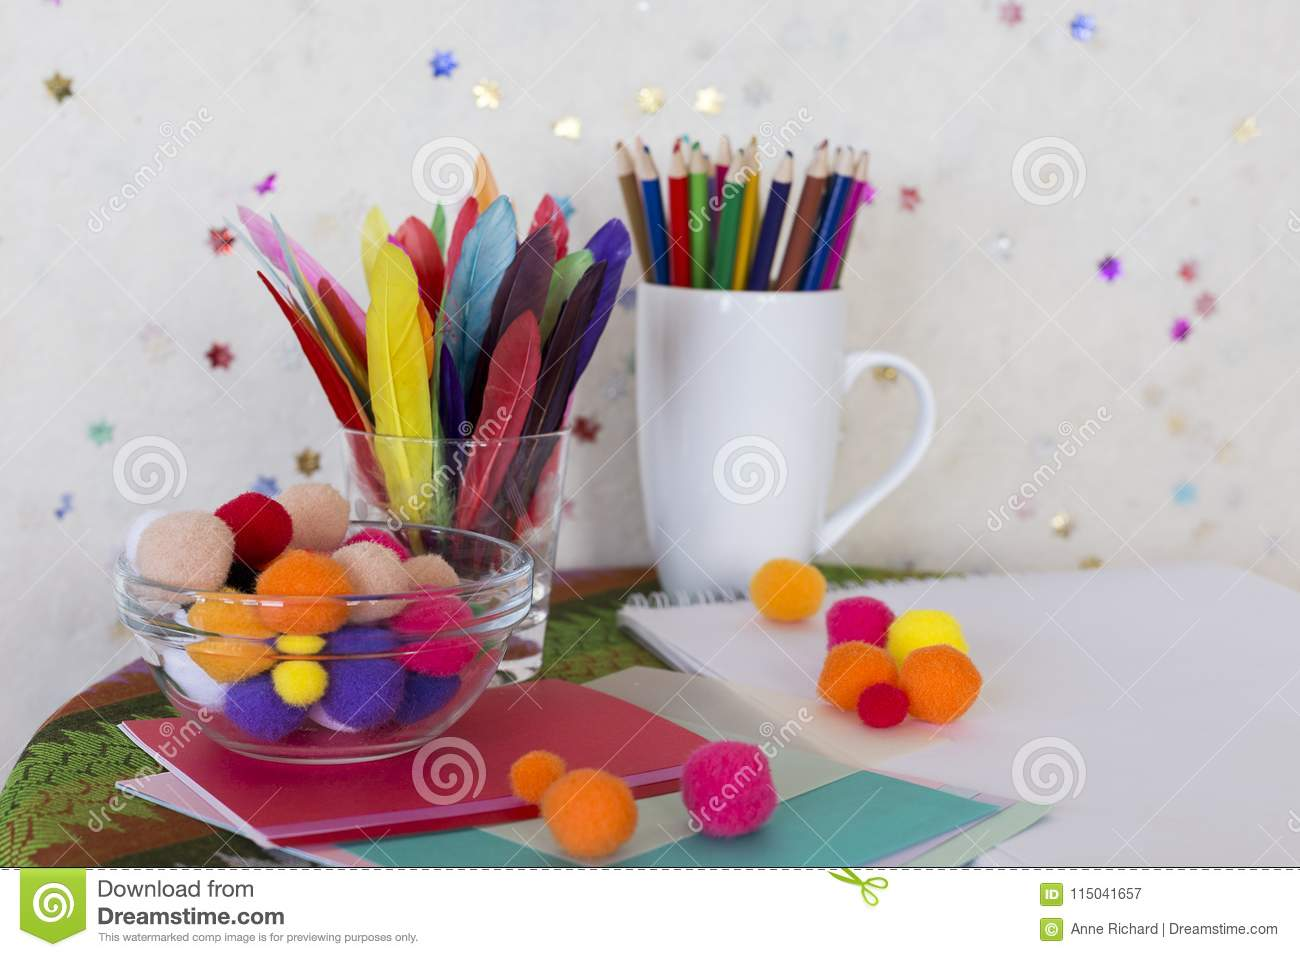 Child arts and craft work station with colored pencils, colourful feathers, pom poms and paper